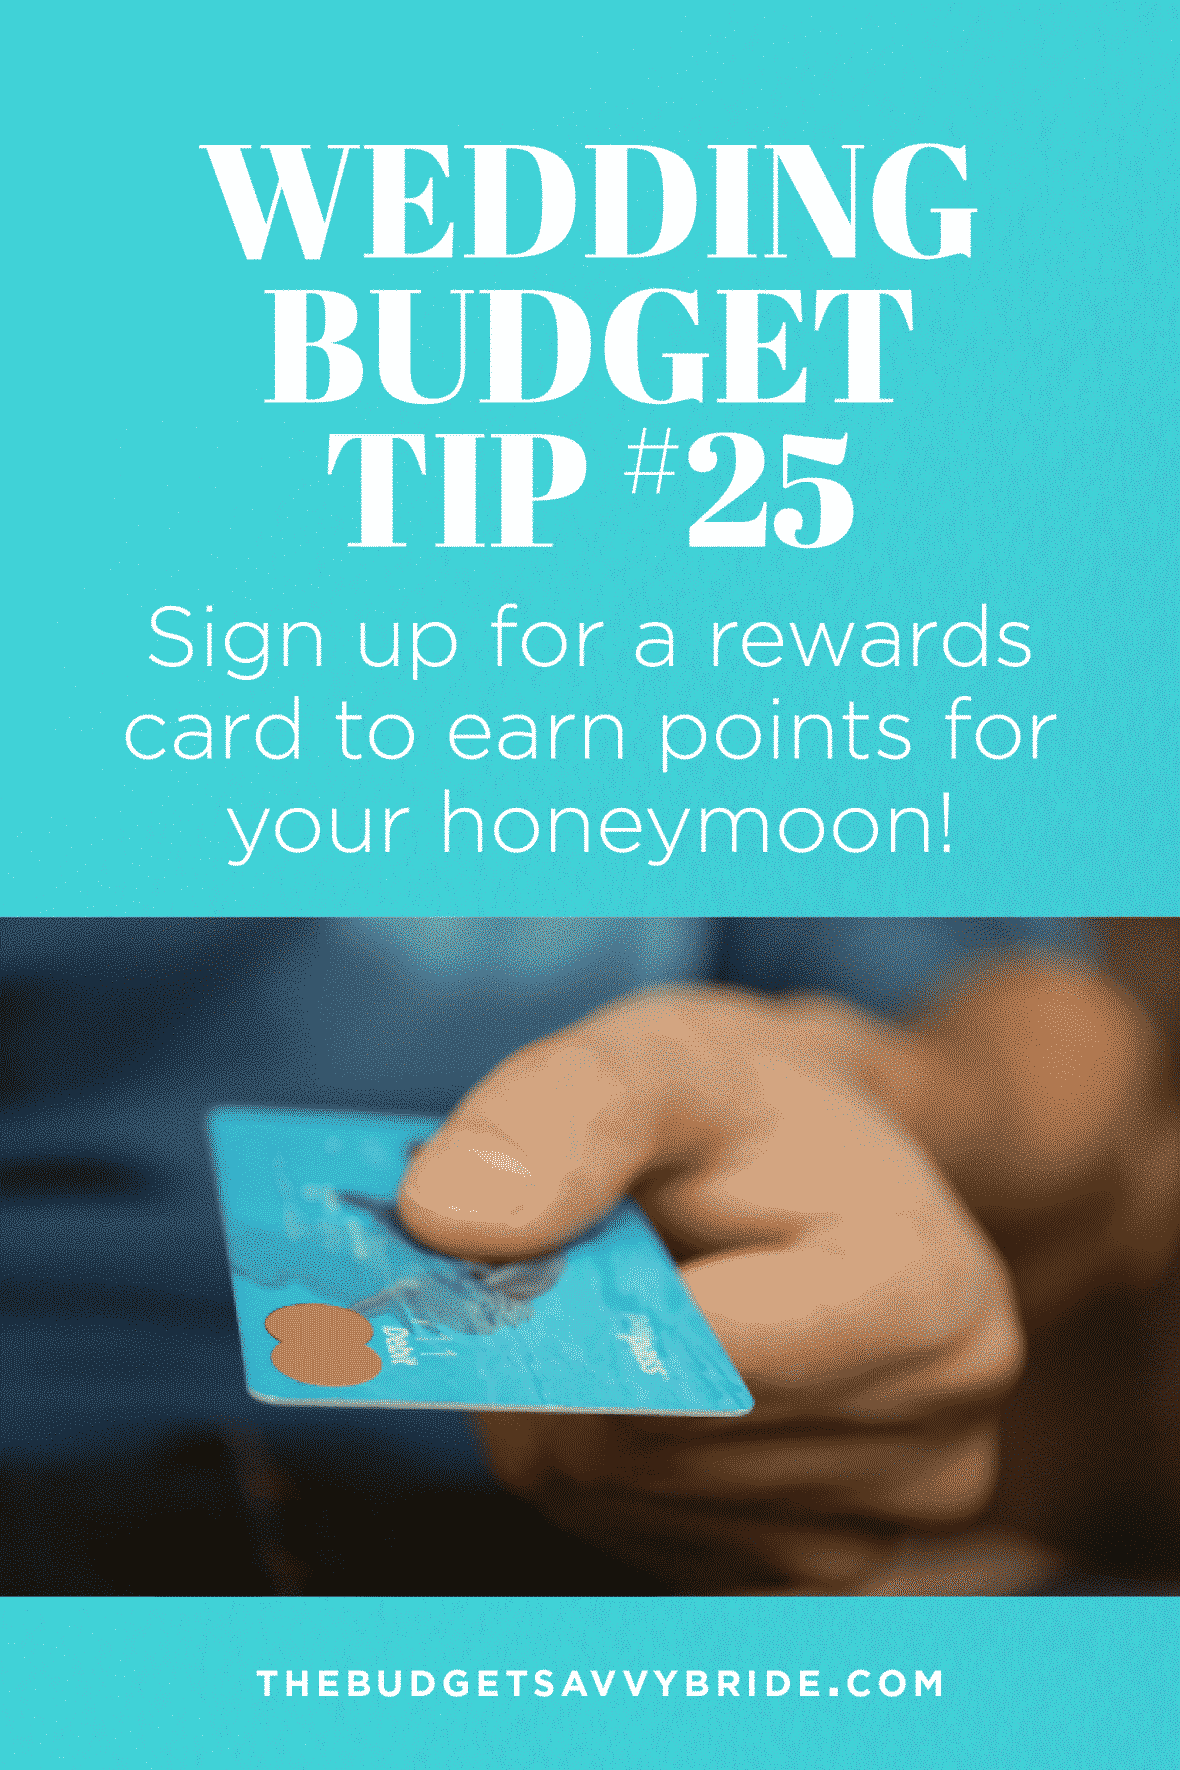 Wedding Budget Tip 25: Sign up for a rewards credit card to earn points for your honeymoon!